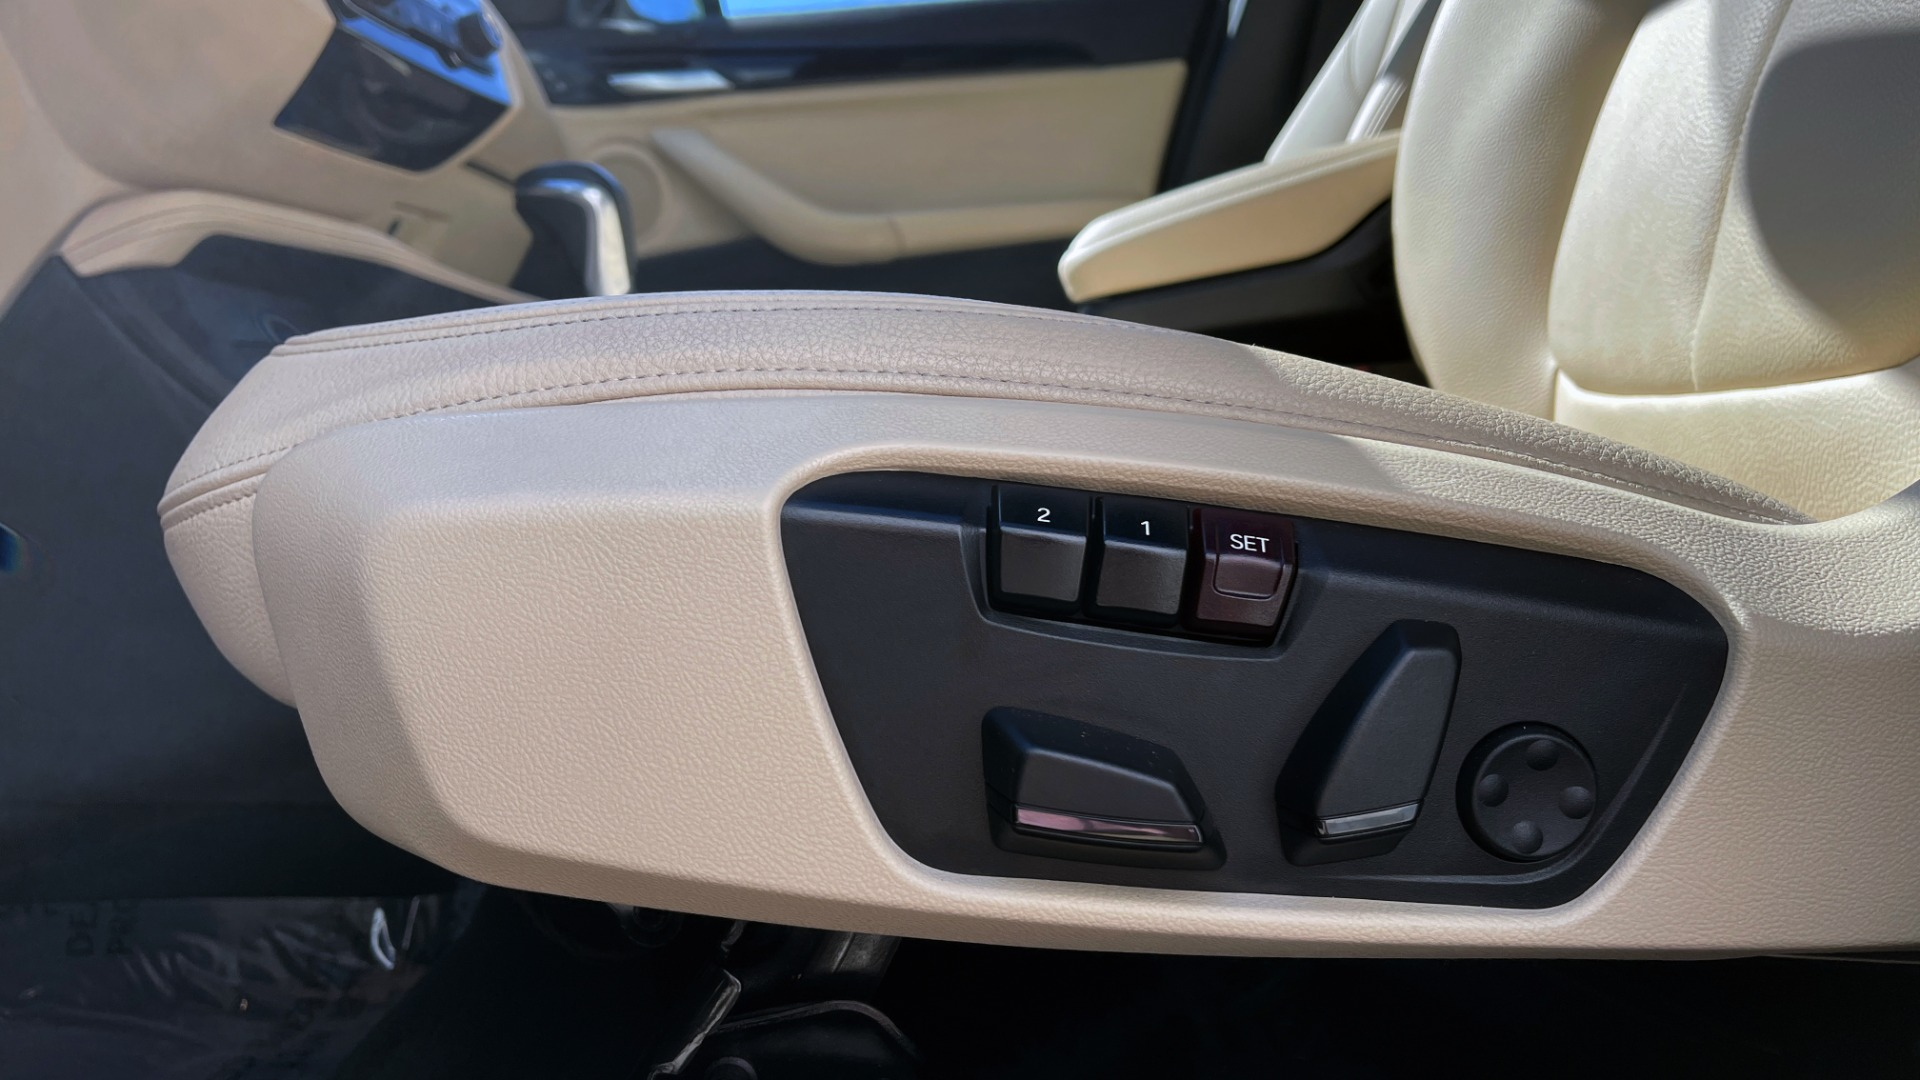 Used 2018 BMW X1 XDRIVE28I / CONV PKG / HTD SEATS / PANO-ROOF / REARVIEW for sale Sold at Formula Imports in Charlotte NC 28227 31